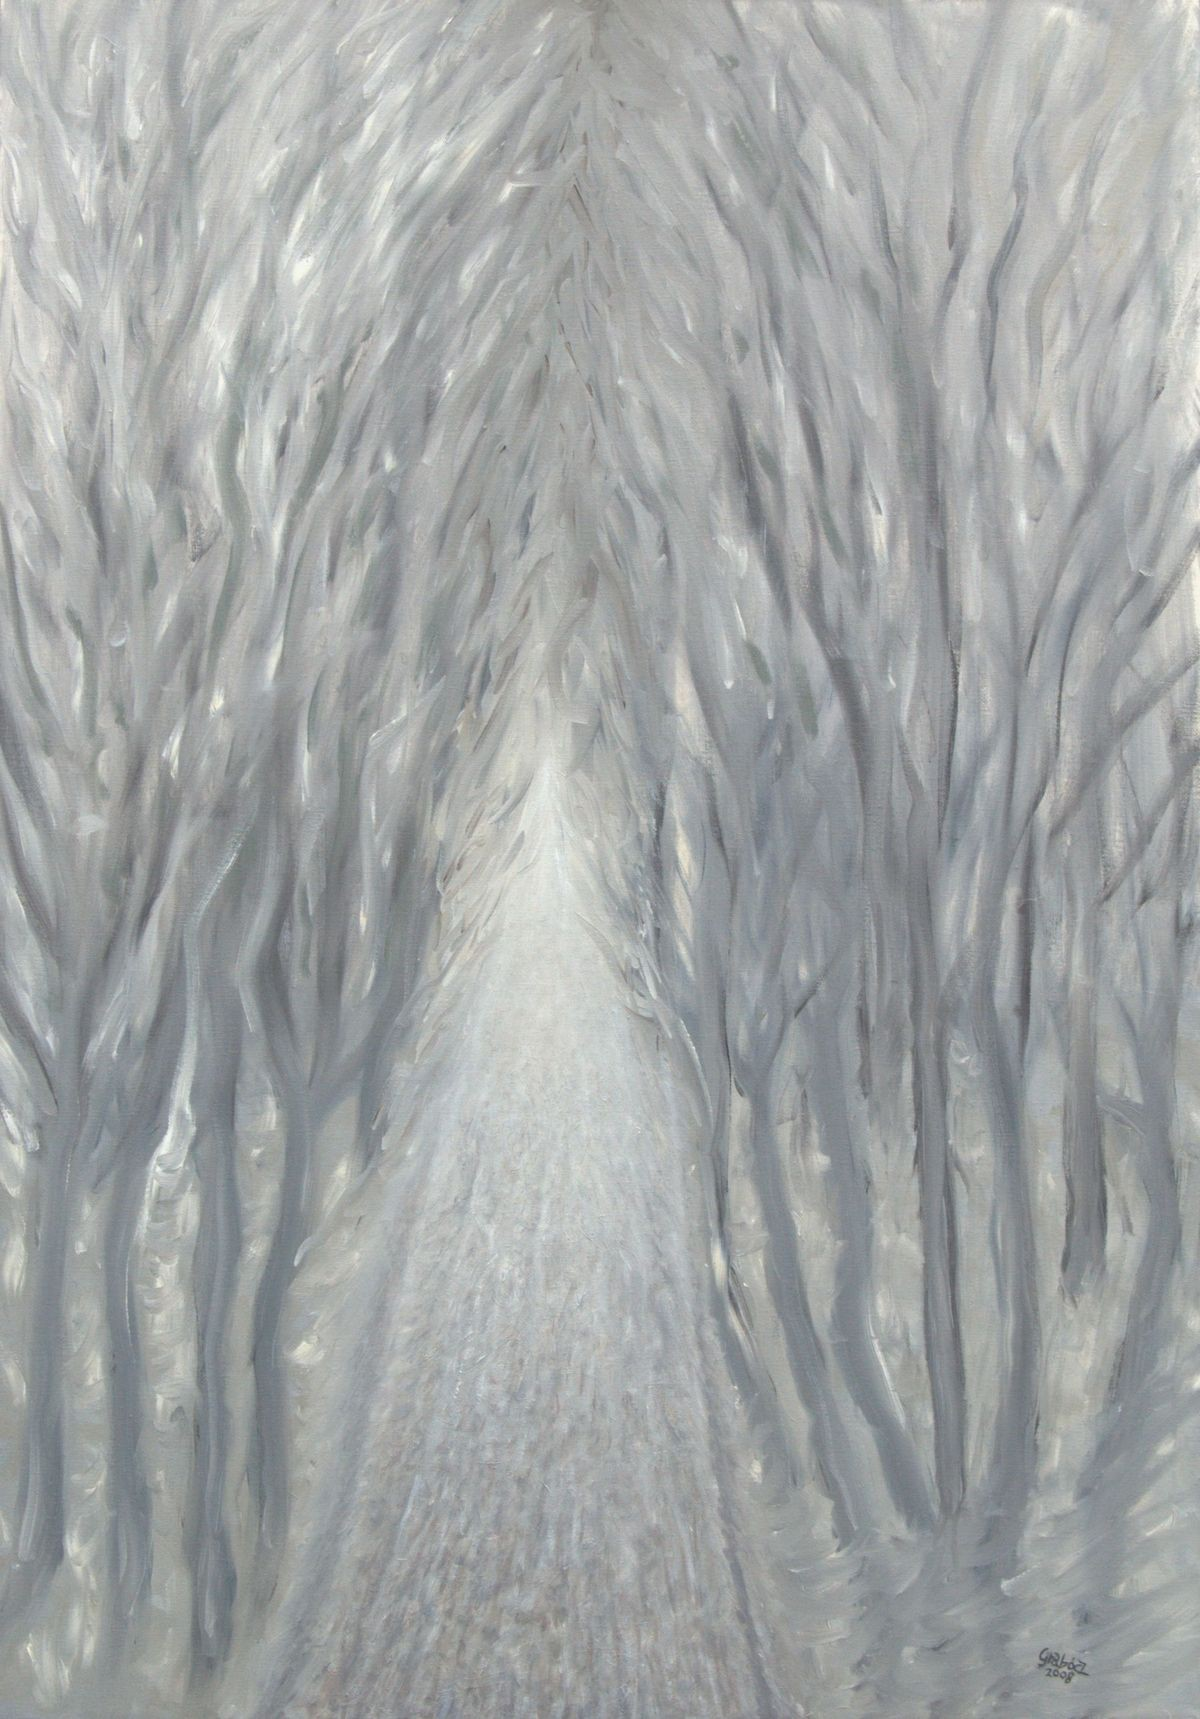 25 (oil on canvas, 70x100 cm), 2008-10